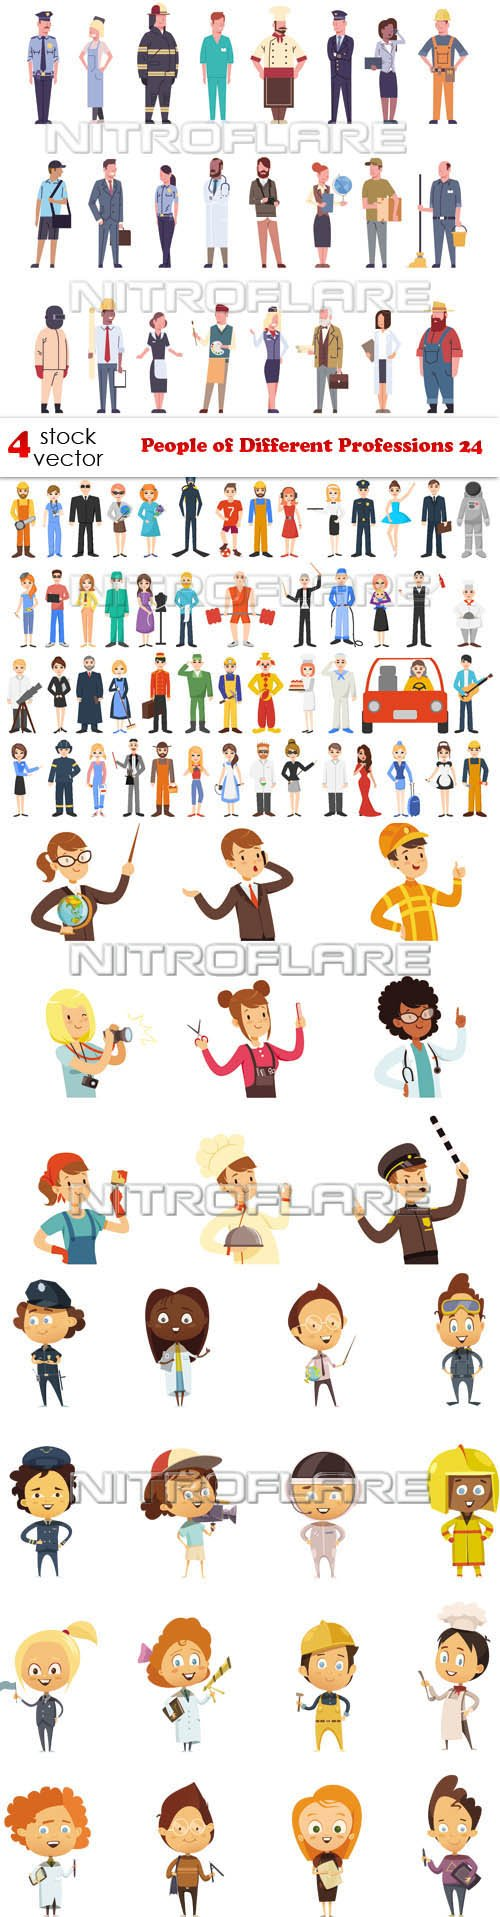 Vectors - People of Different Professions 24